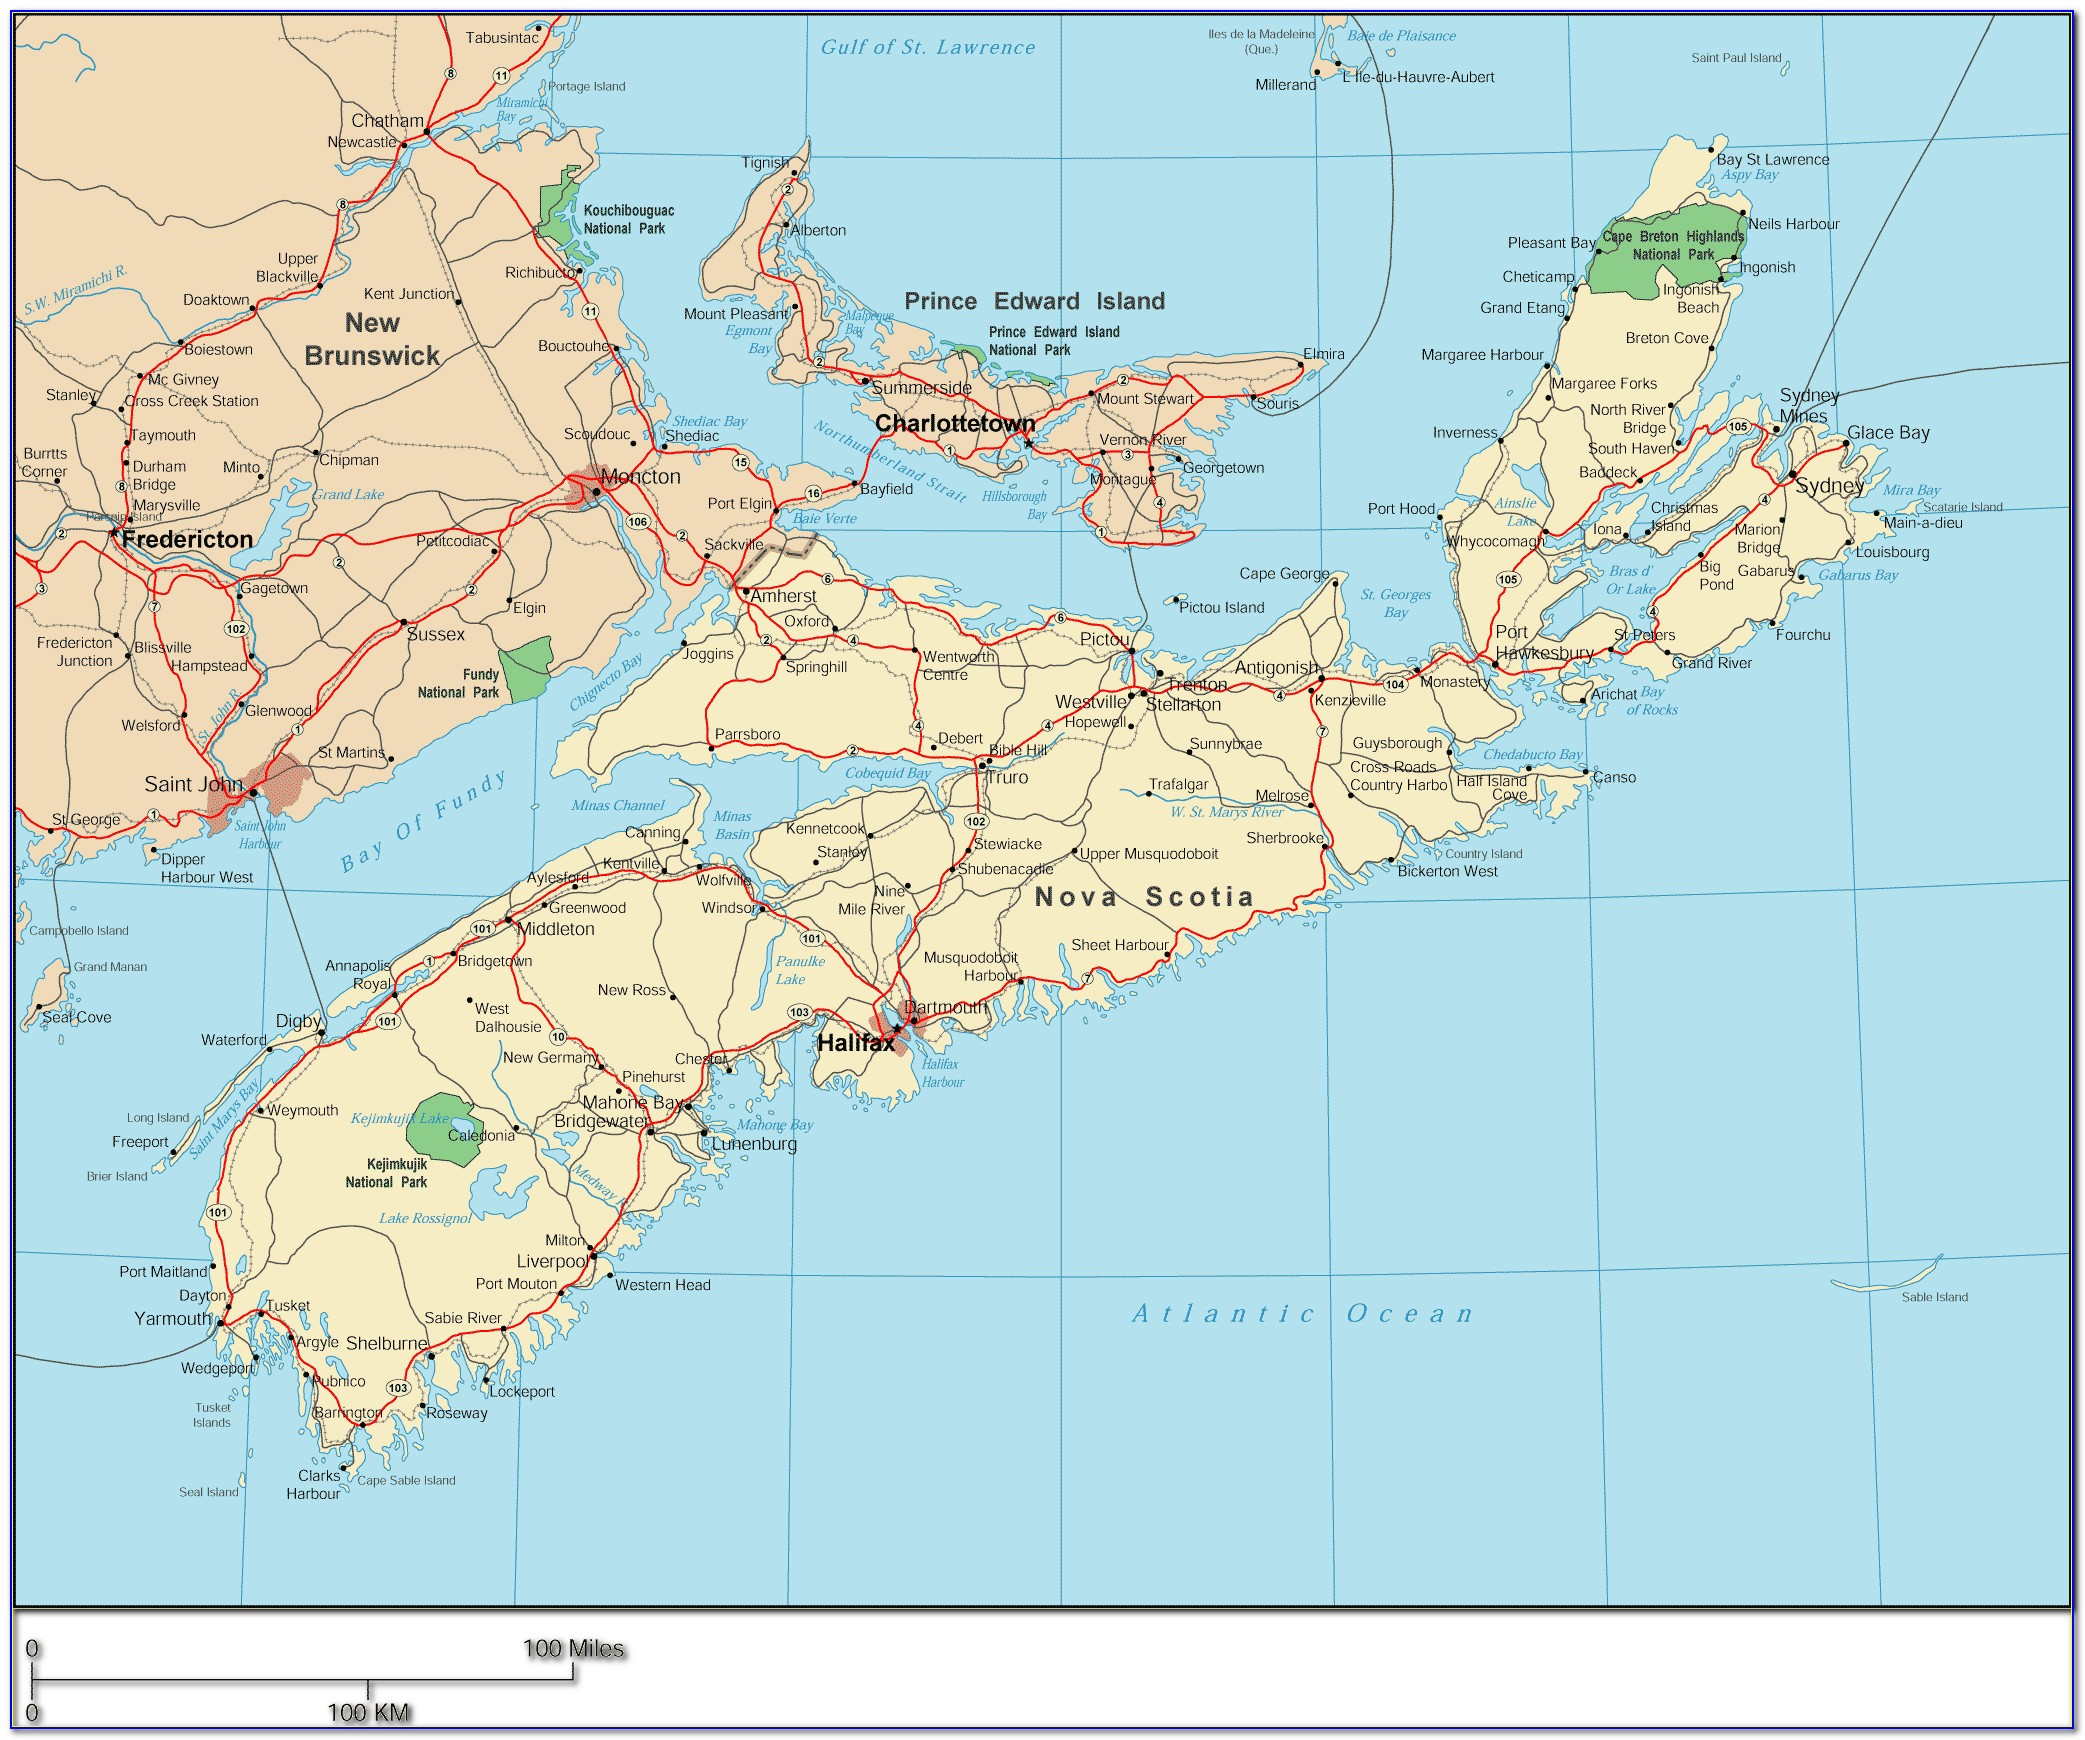 Driving Map From Toronto To Nova Scotia